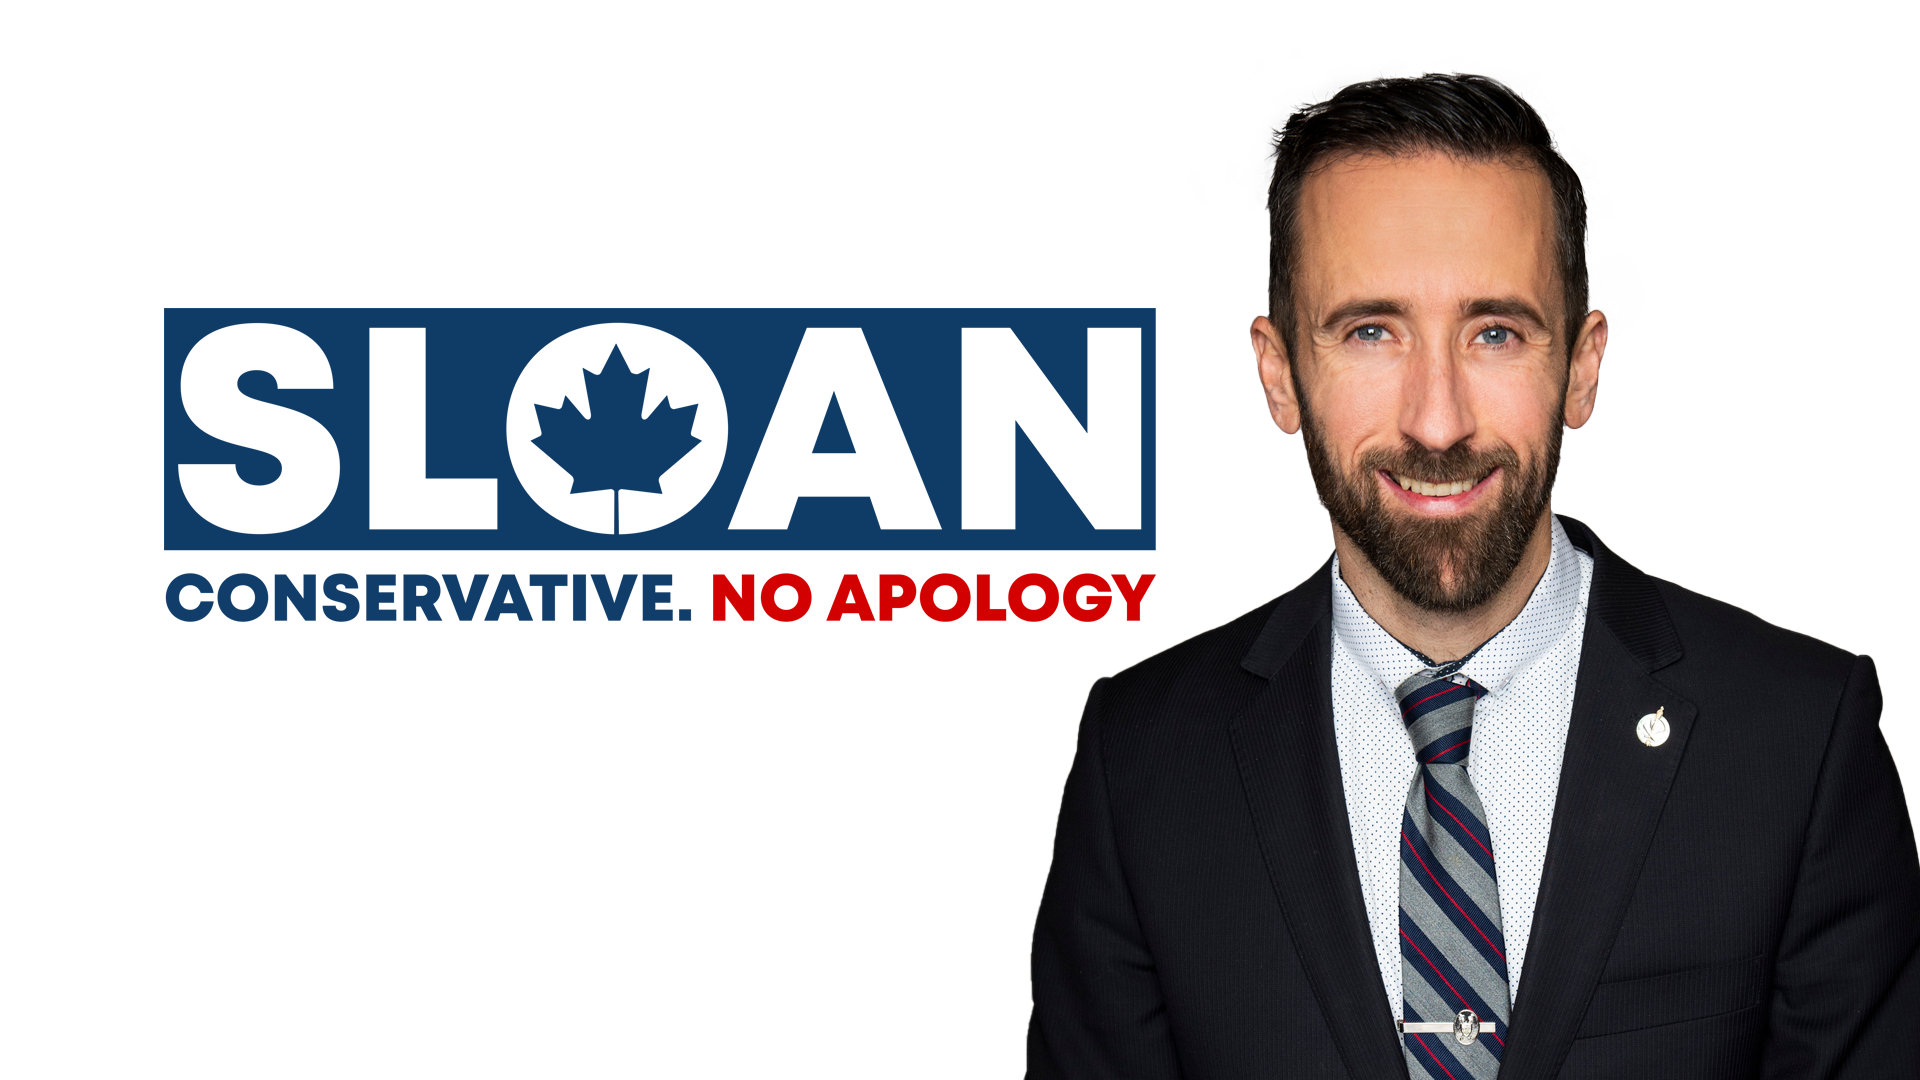 Derek Sloan: Conservative. No Apology.